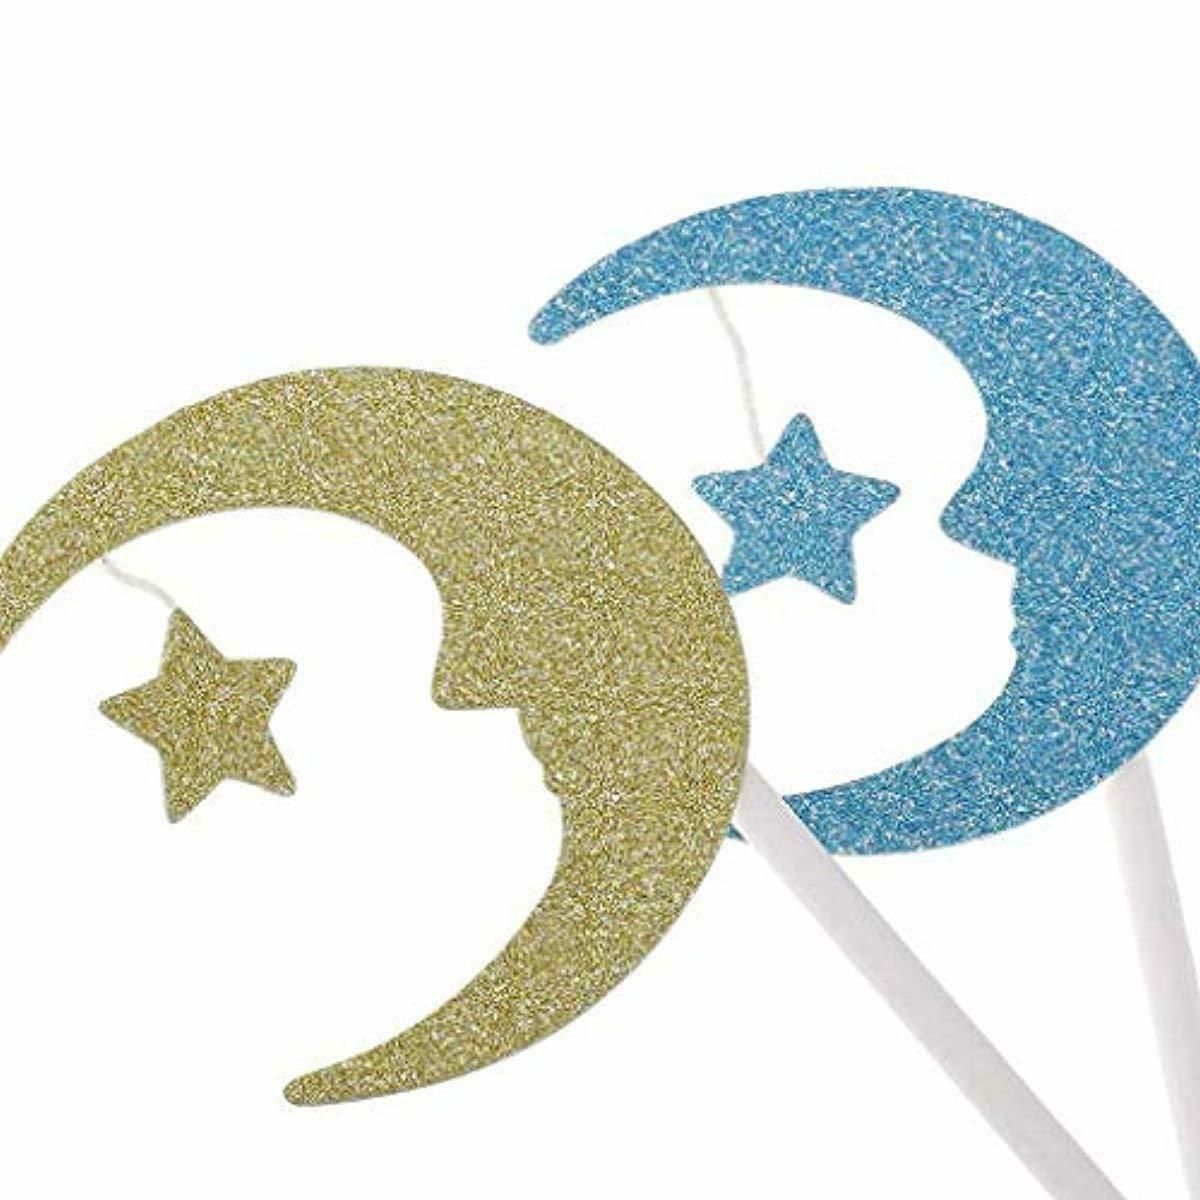 30Pcs Cupcake Toppers Paper Moon Topper Engagement